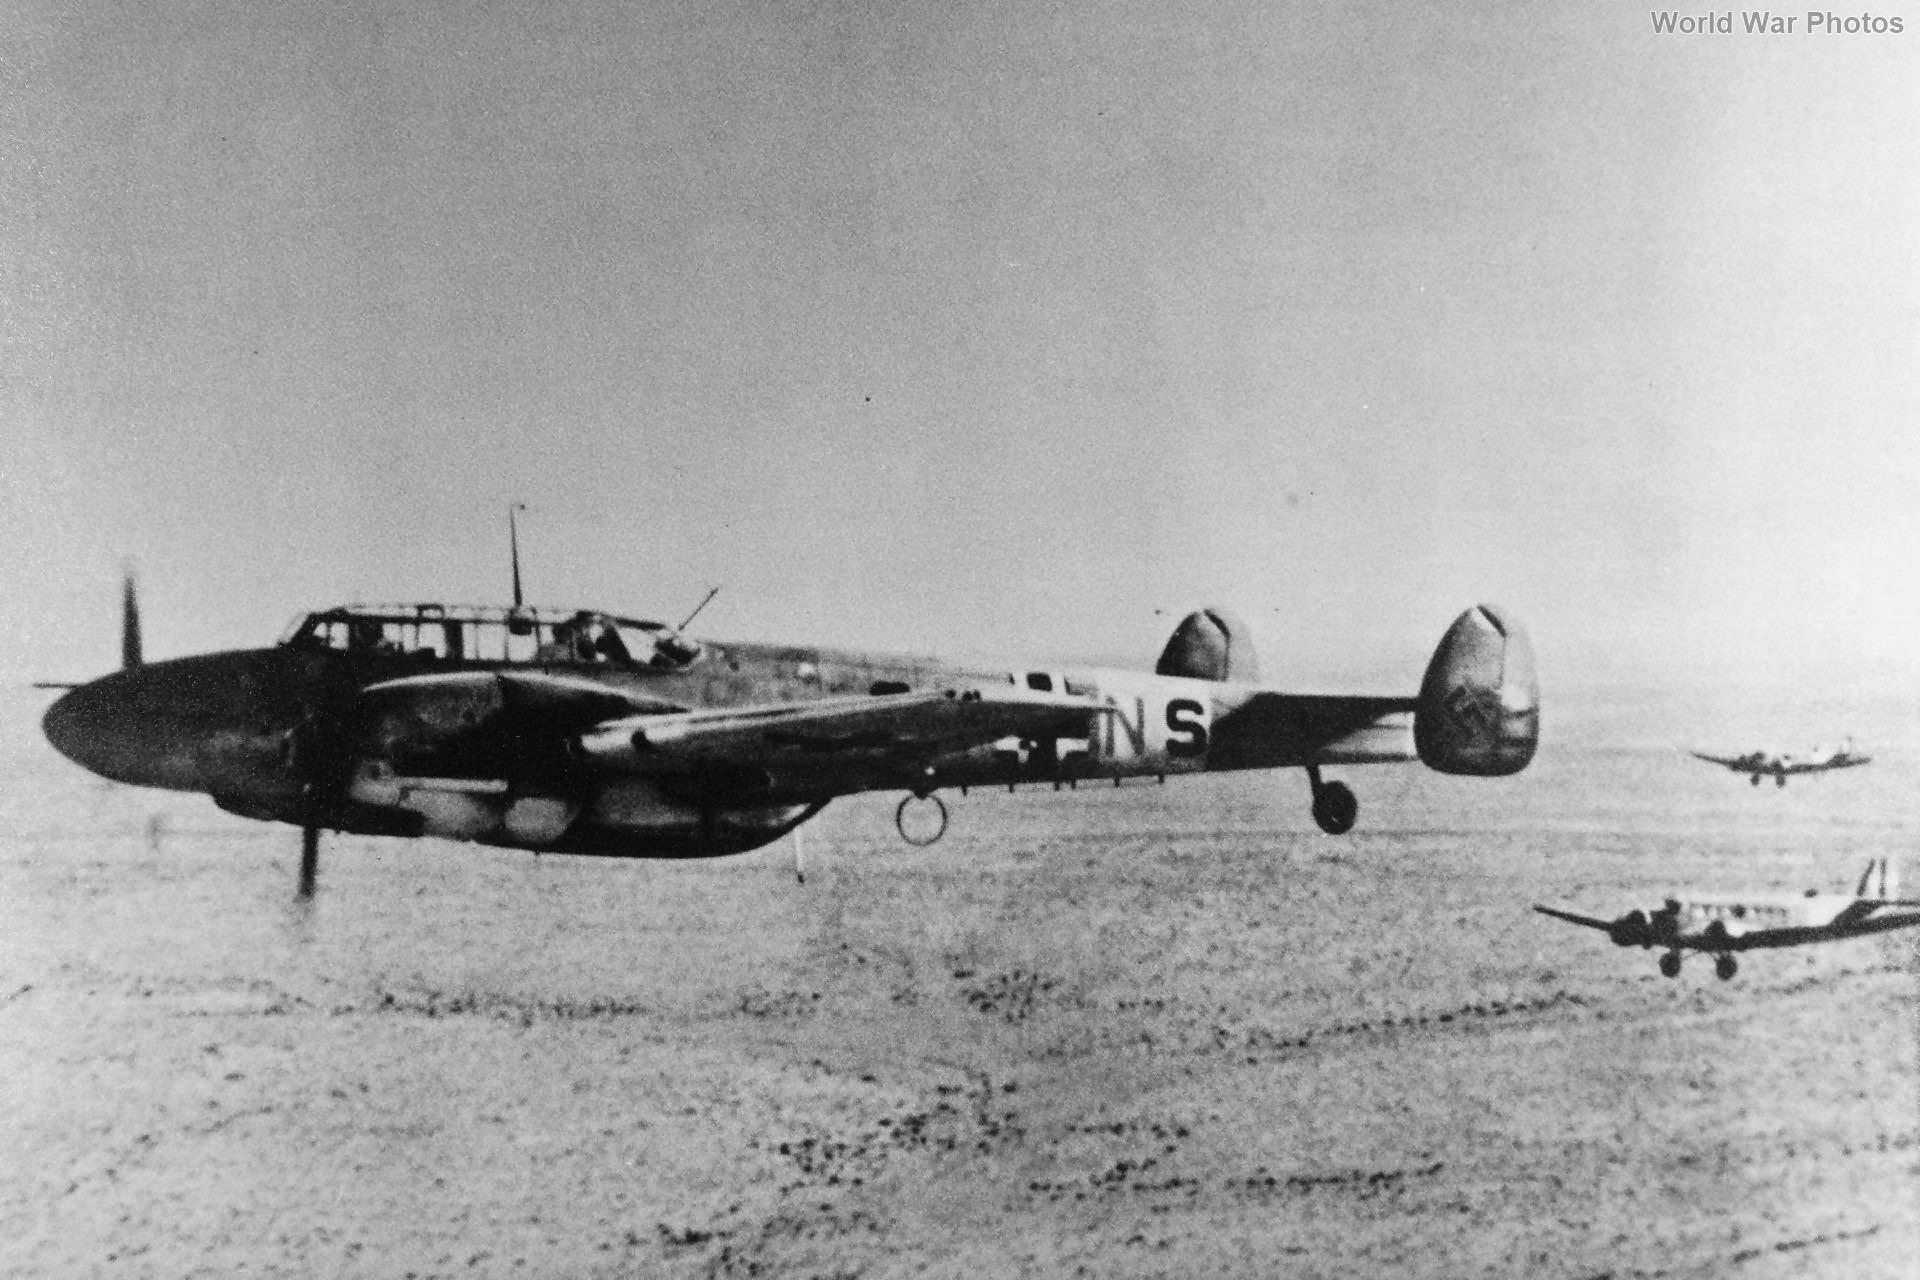 Ju 52s escorted by Bf 110 3U-NS of ZG26, North Africa